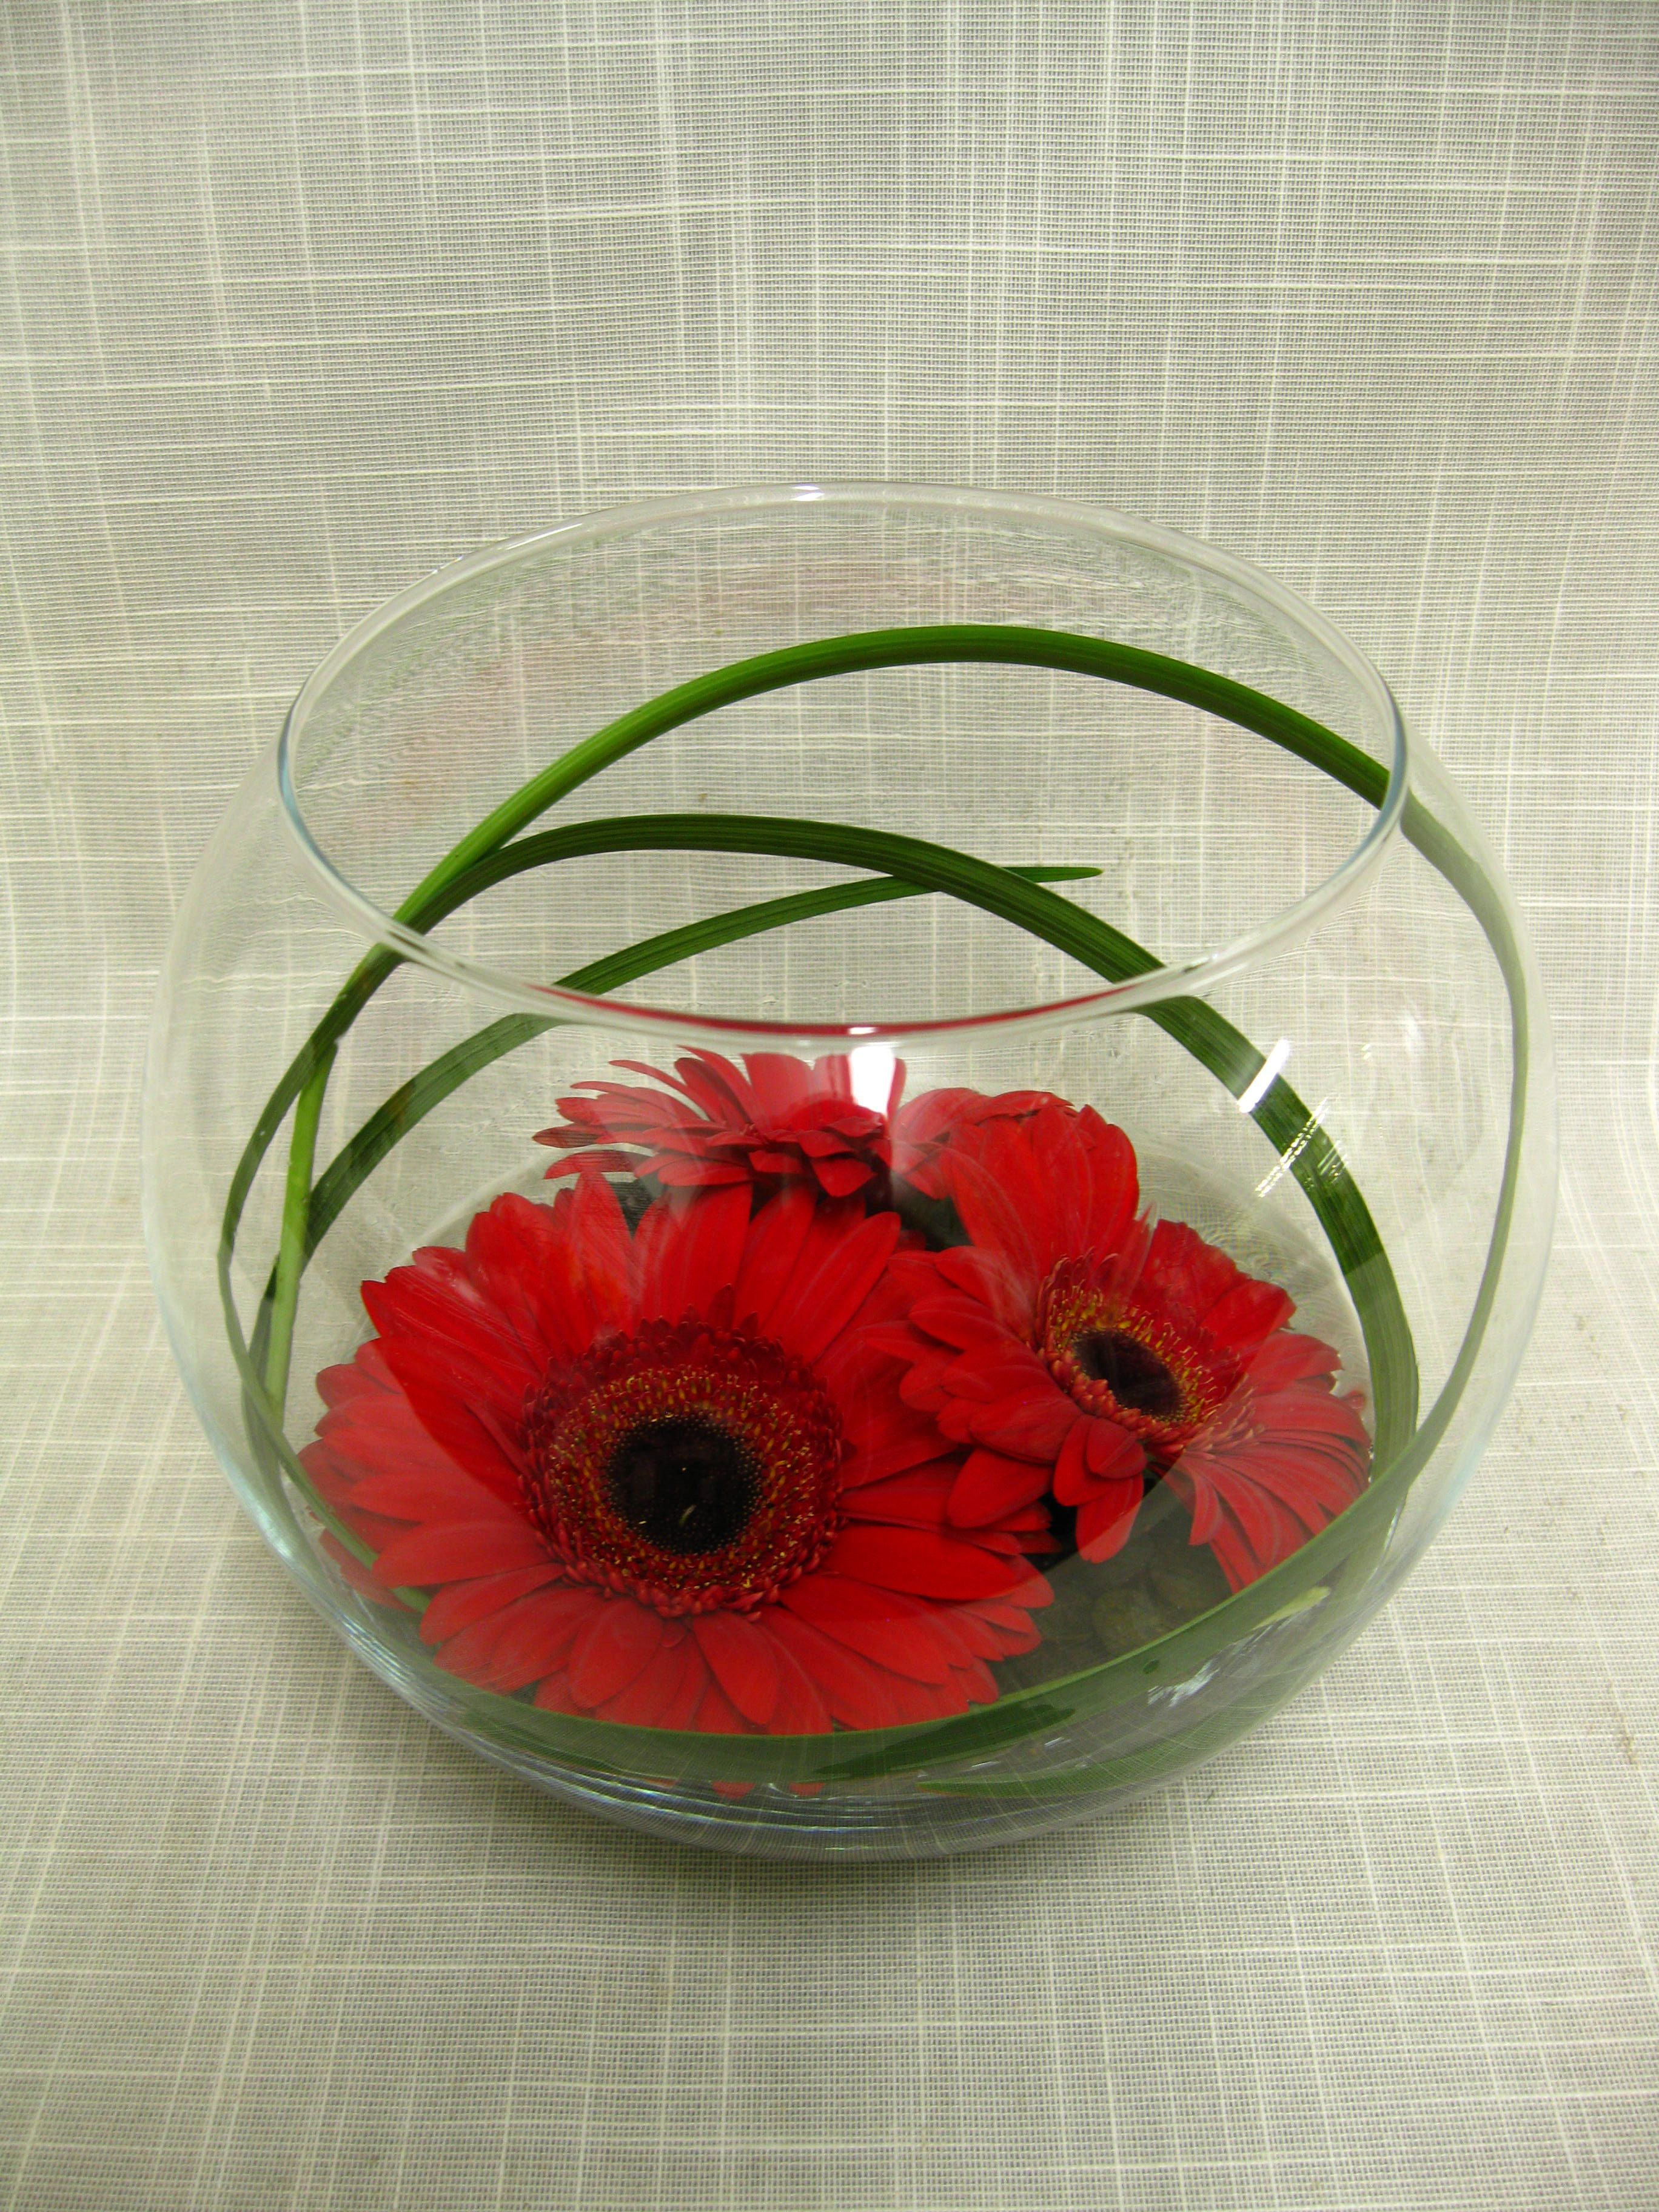 Red gerbera daisies inside a clear glass bowl lined with